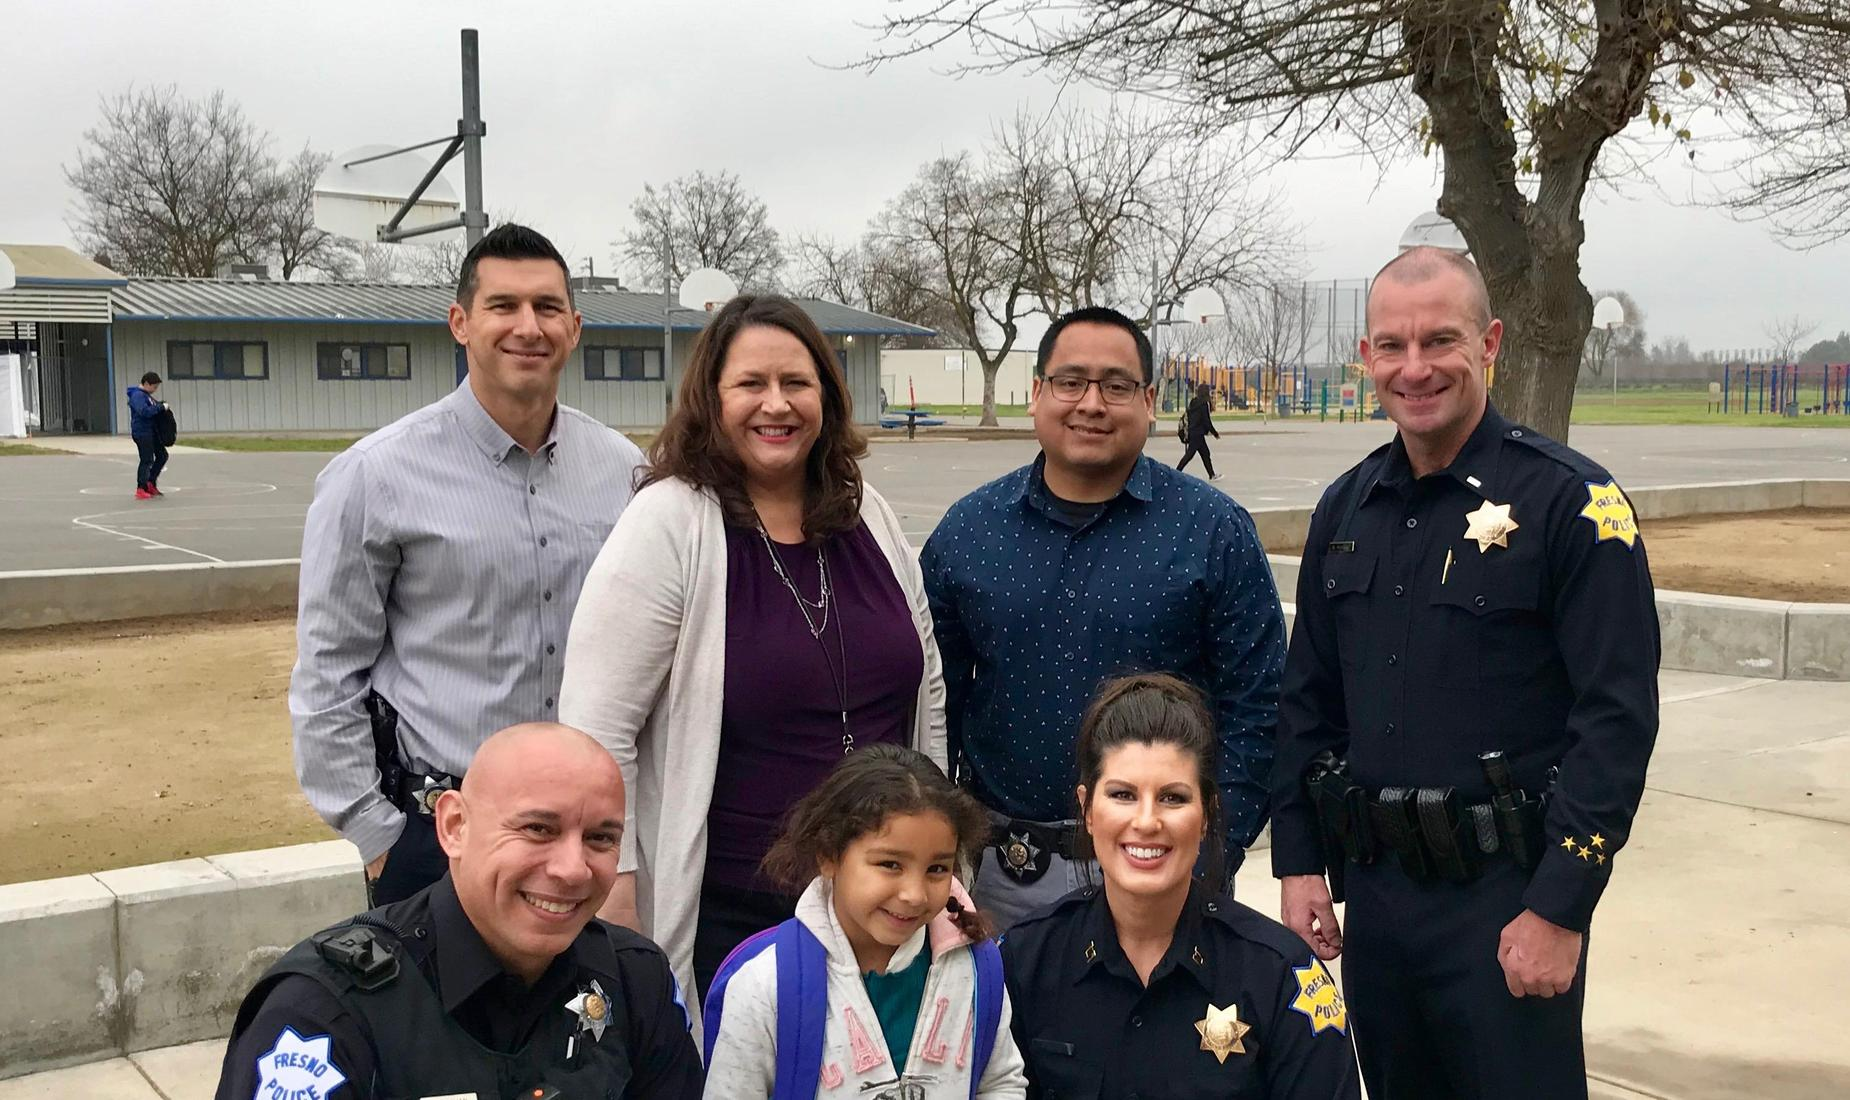 Madison staff with members of the Fresno Police Department